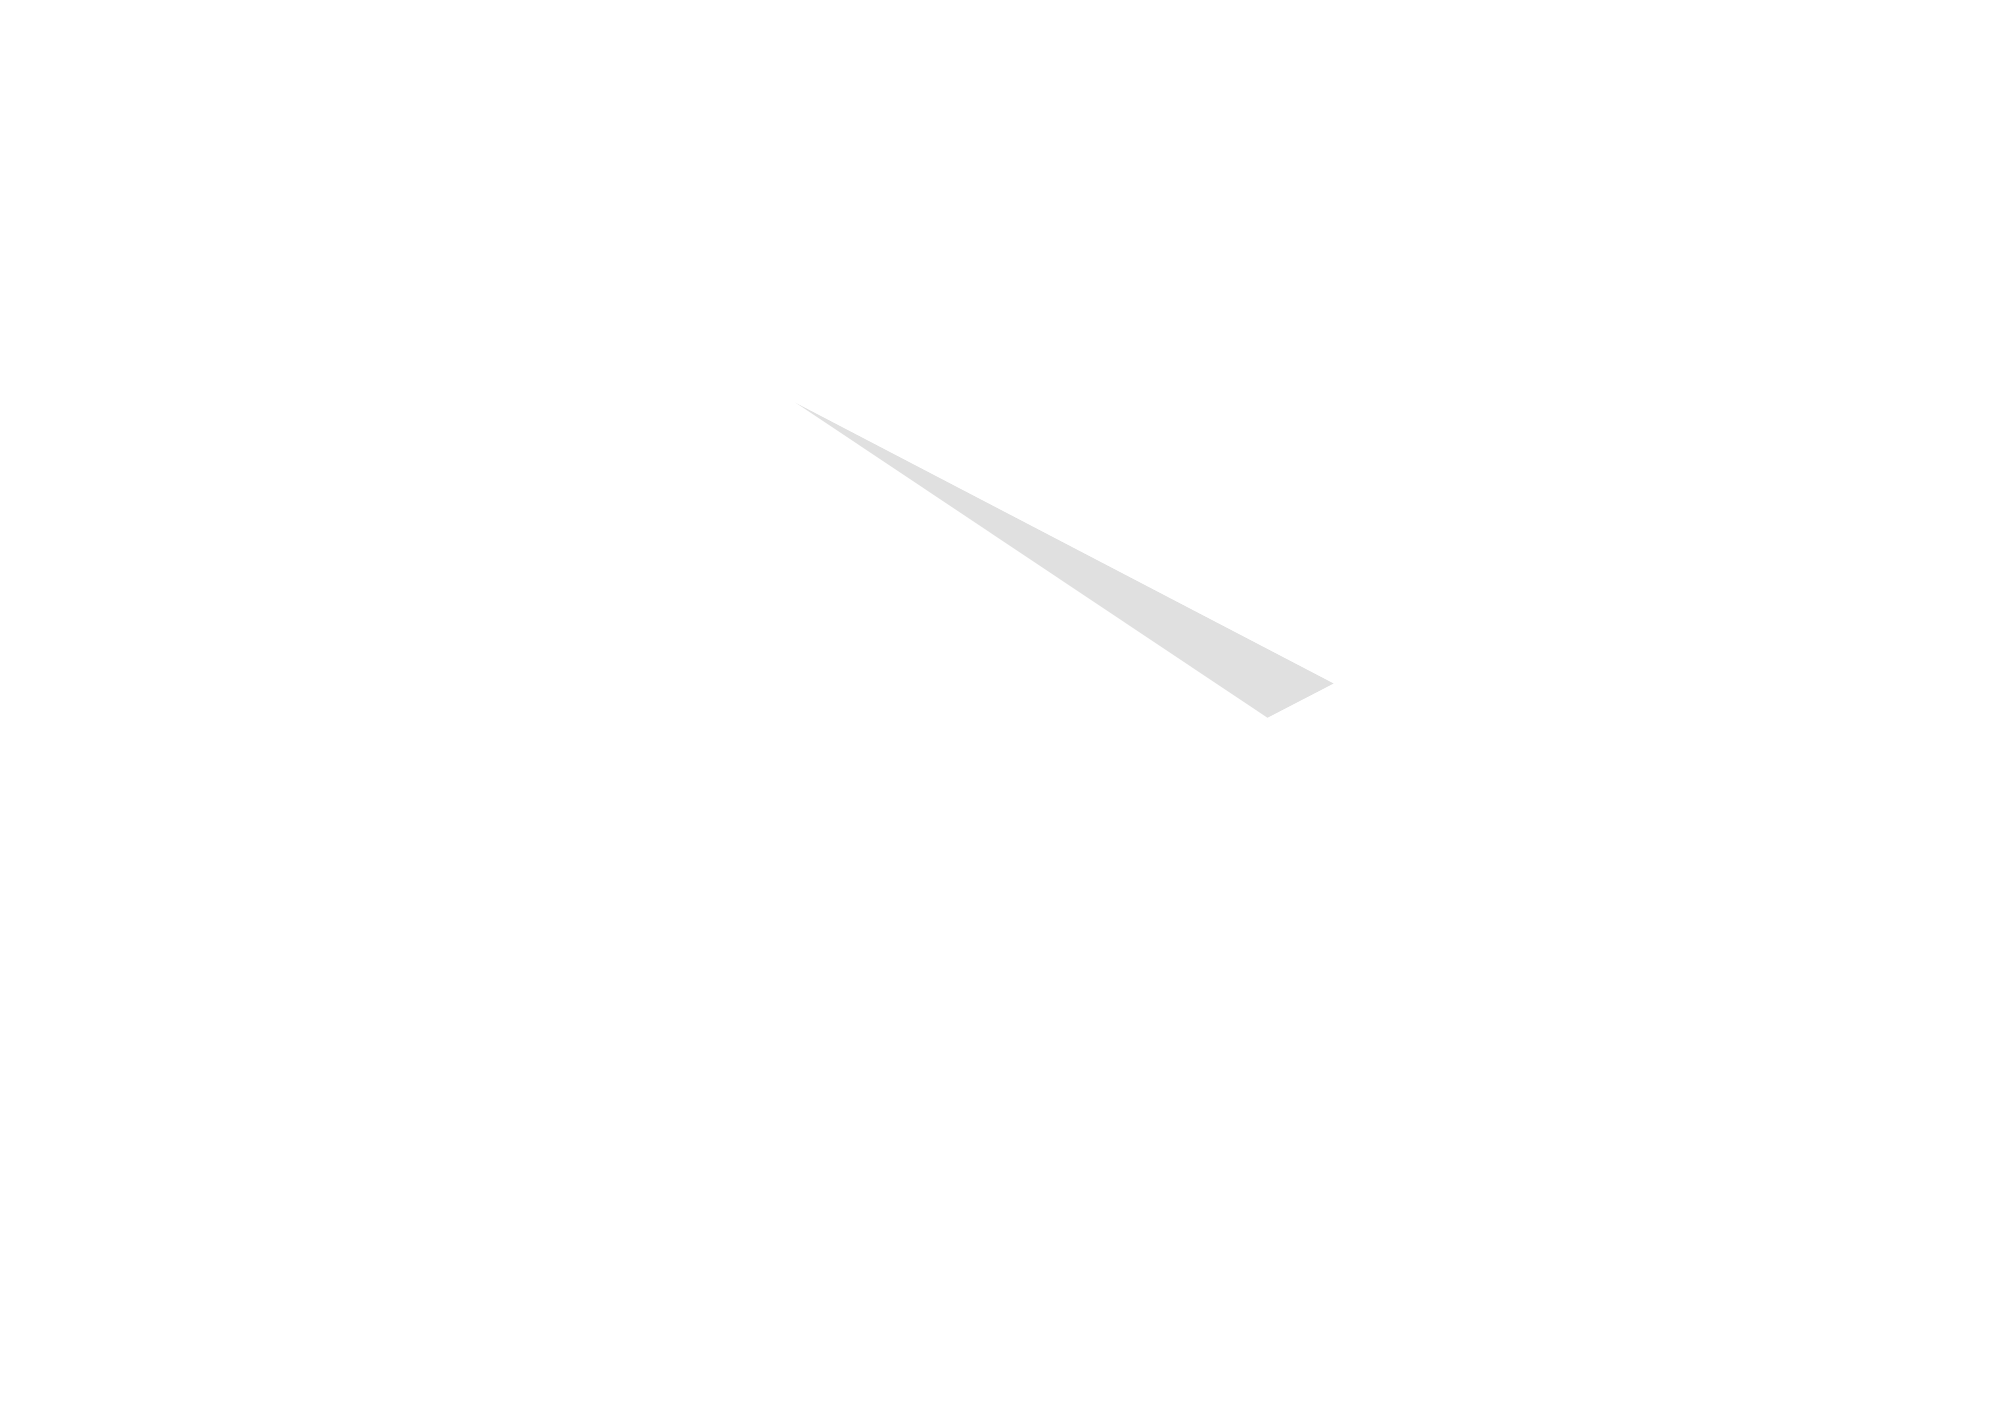 White youtube play button png. Olfi camera hd action